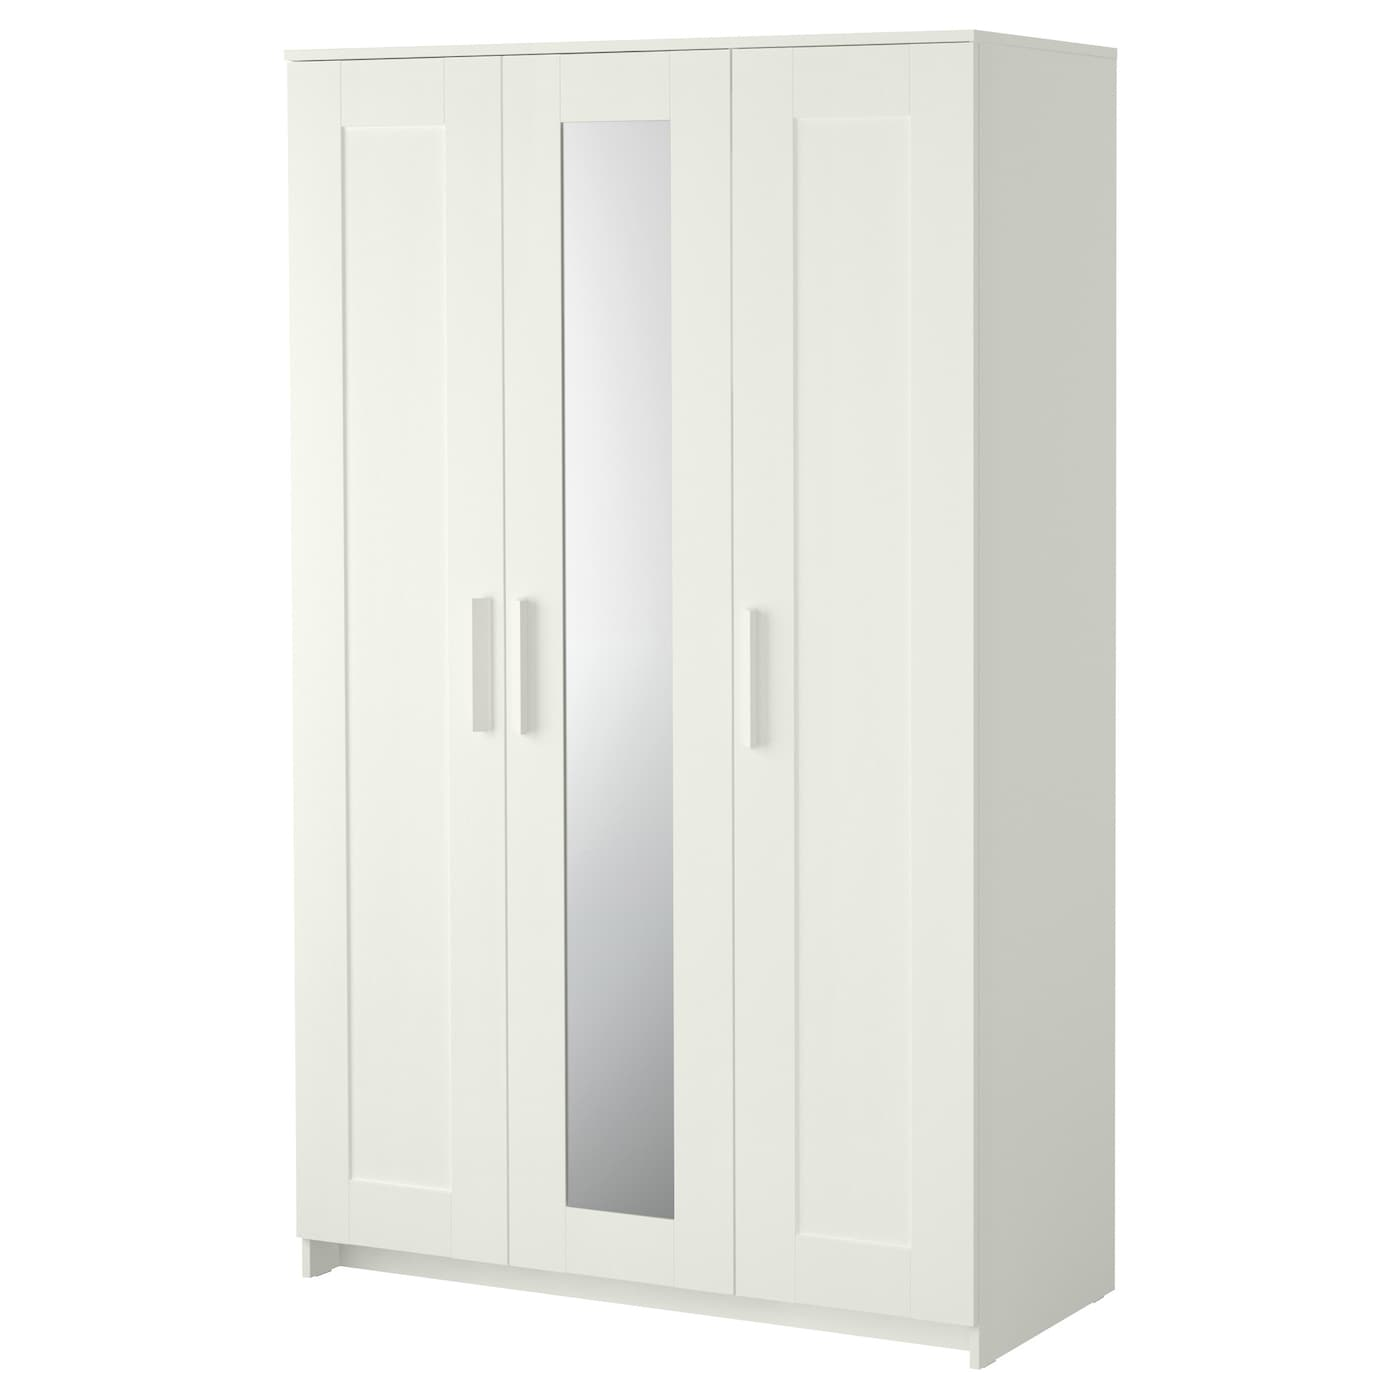 armoire ikea leksvik top s leksvik assembly instruction with armoire ikea leksvik elegant. Black Bedroom Furniture Sets. Home Design Ideas